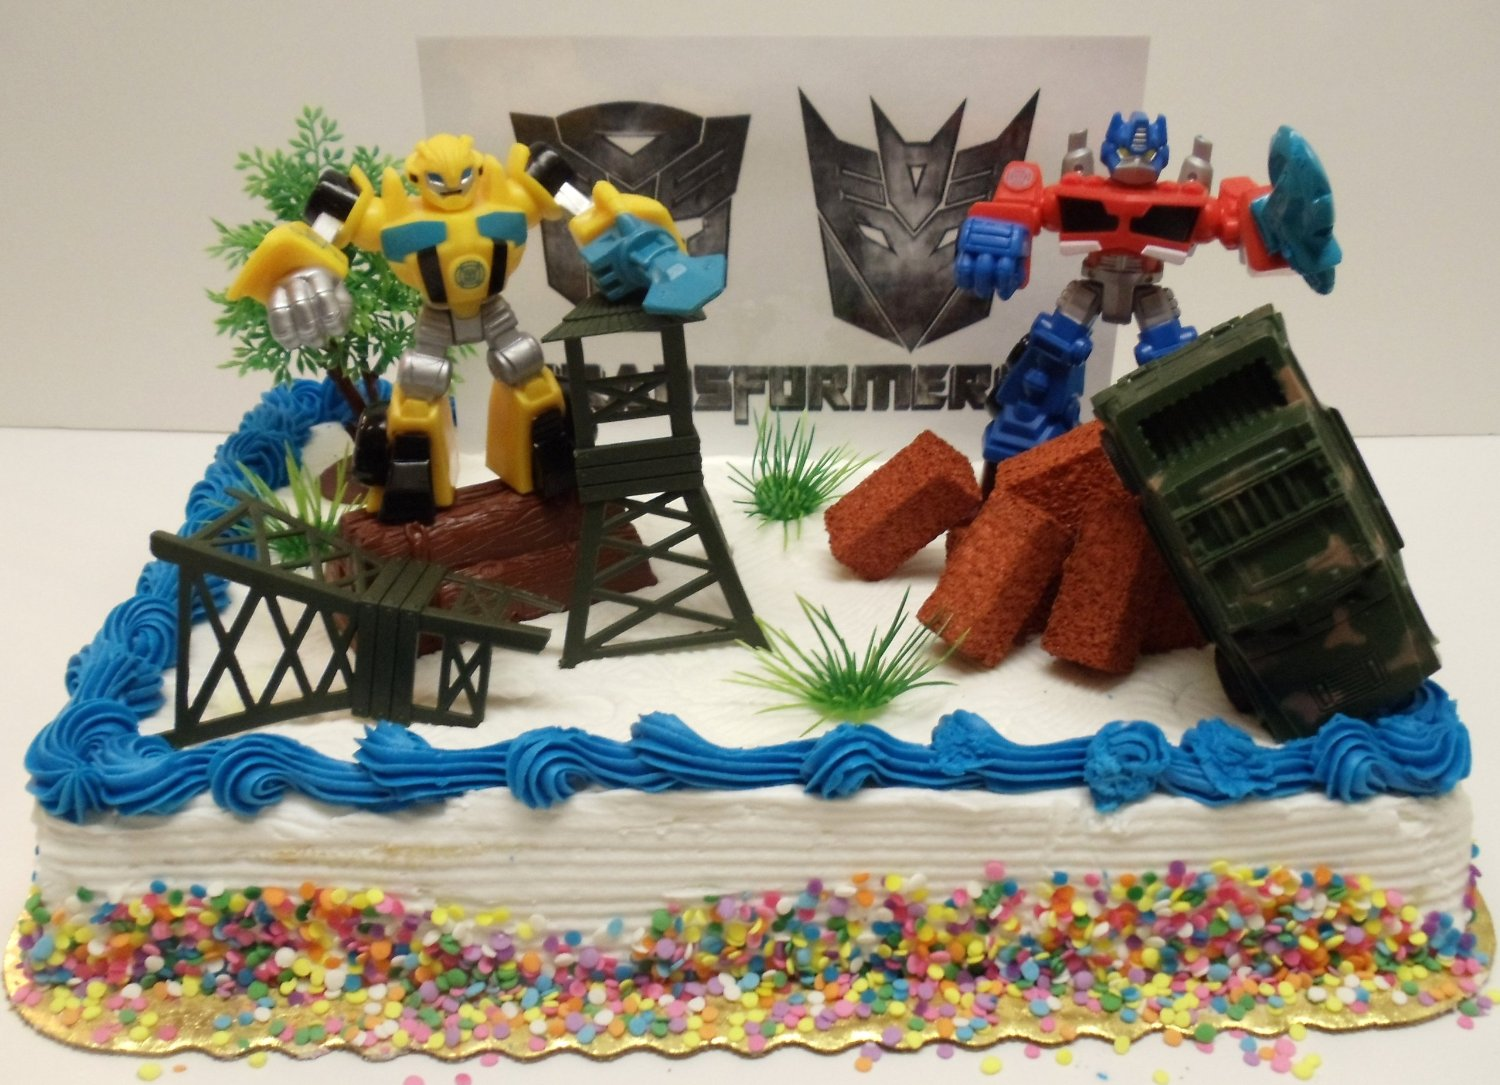 Awesome Transformers 10 Piece Birthday Cake Topper Set Featuring Bumblebee Funny Birthday Cards Online Alyptdamsfinfo